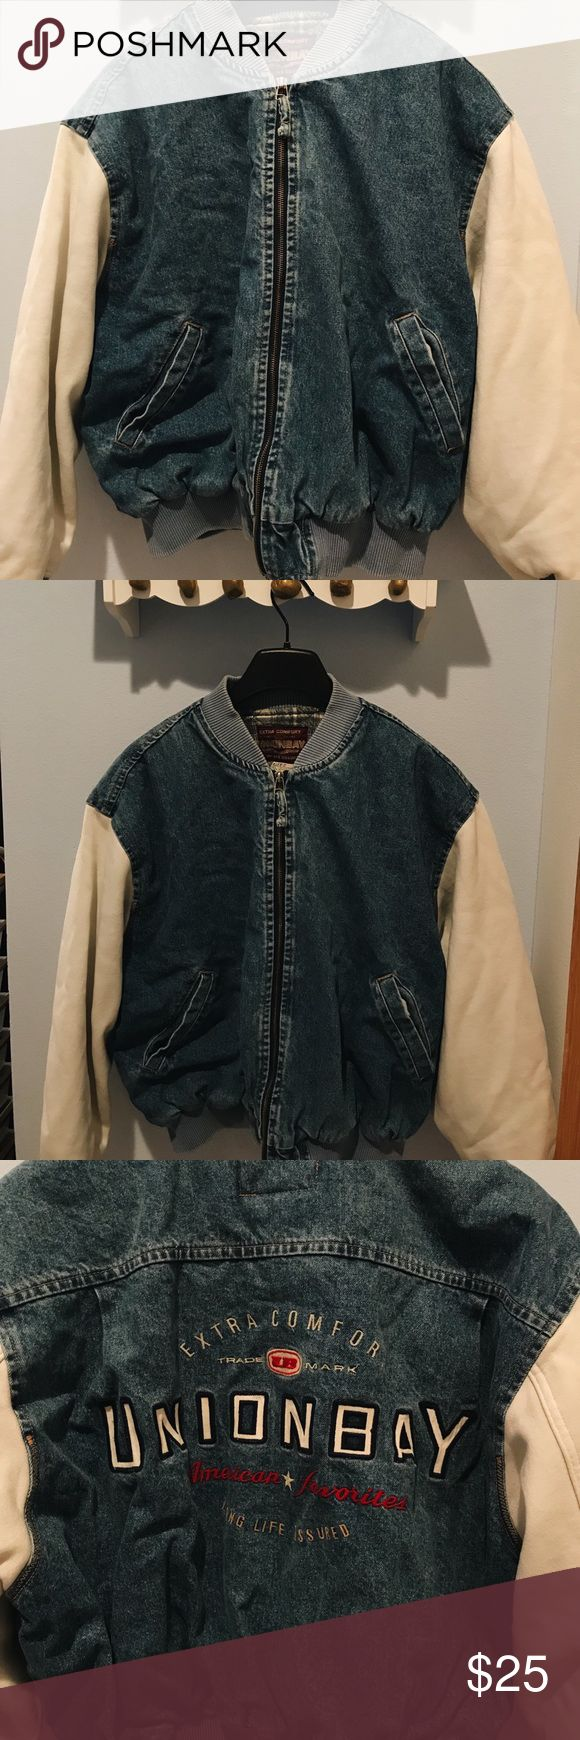 Vintage Union Bay denim jacket Very warm and thick, a few small stains on the sleeves. It has a cool embroidered design on the back, denim body, and sweatshirt type sleeves. Men's size M Jackets & Coats Jean Jackets